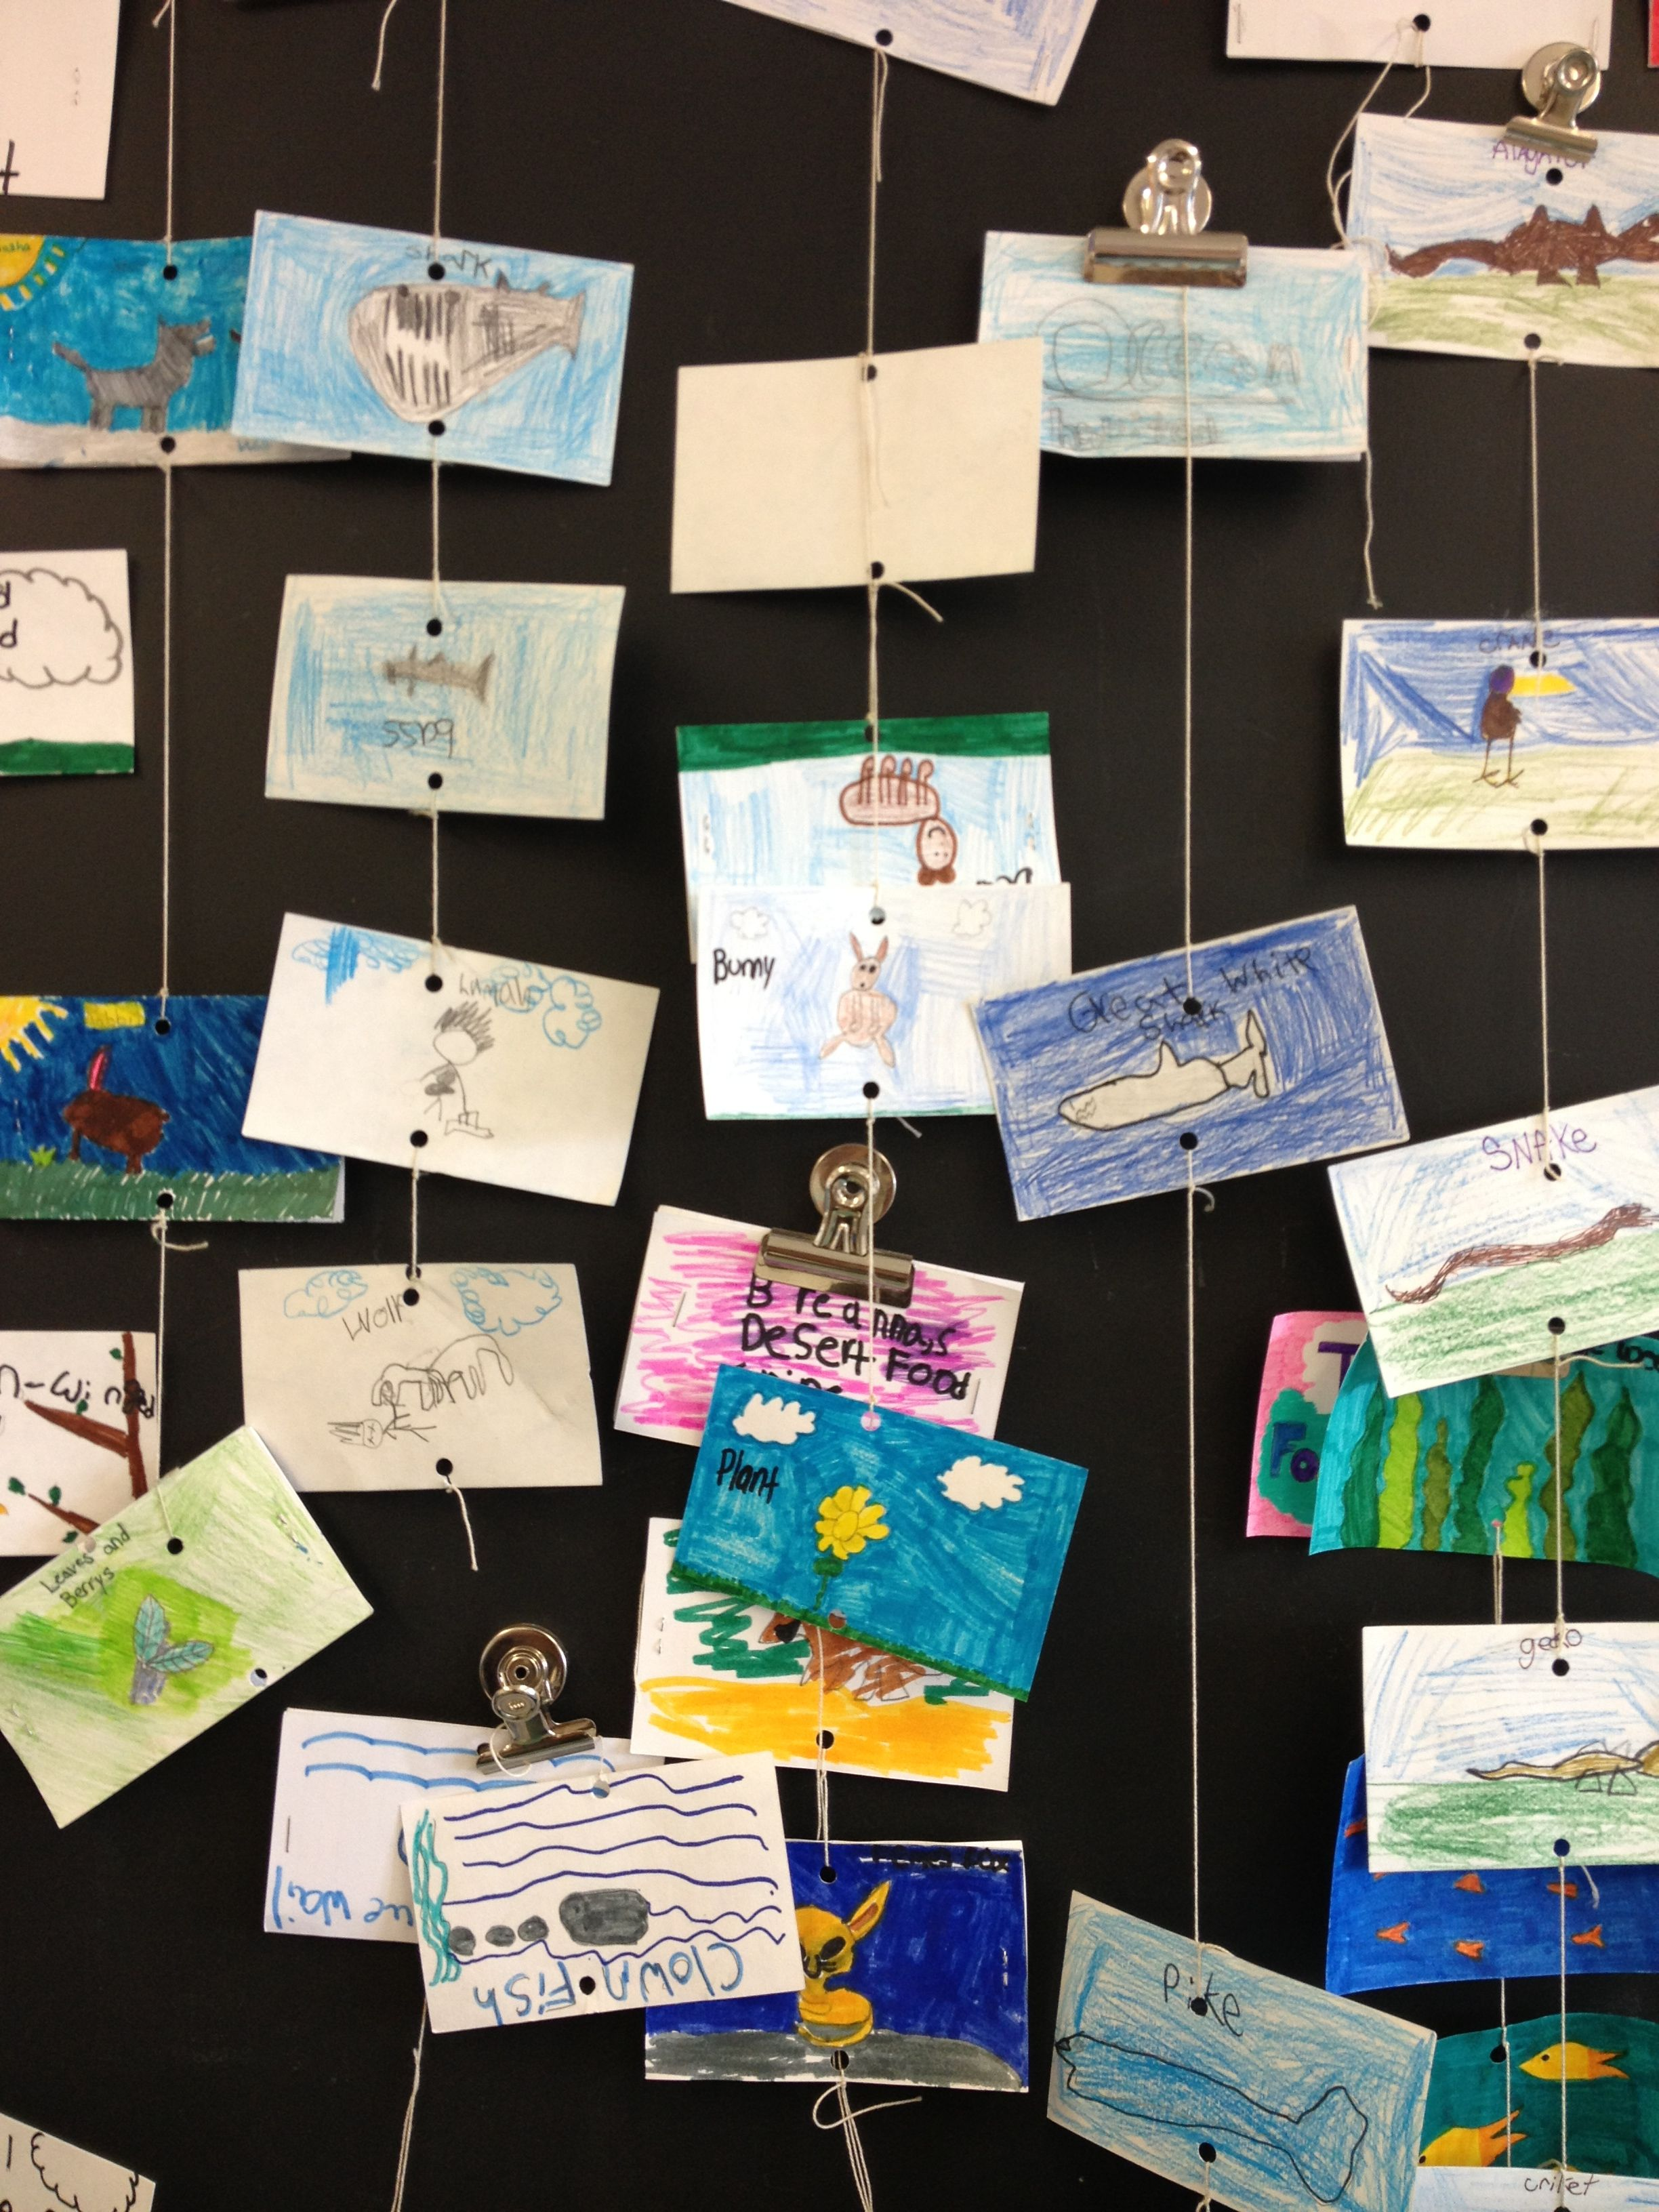 Food Web Food Chain Activity Just A Pic What Could